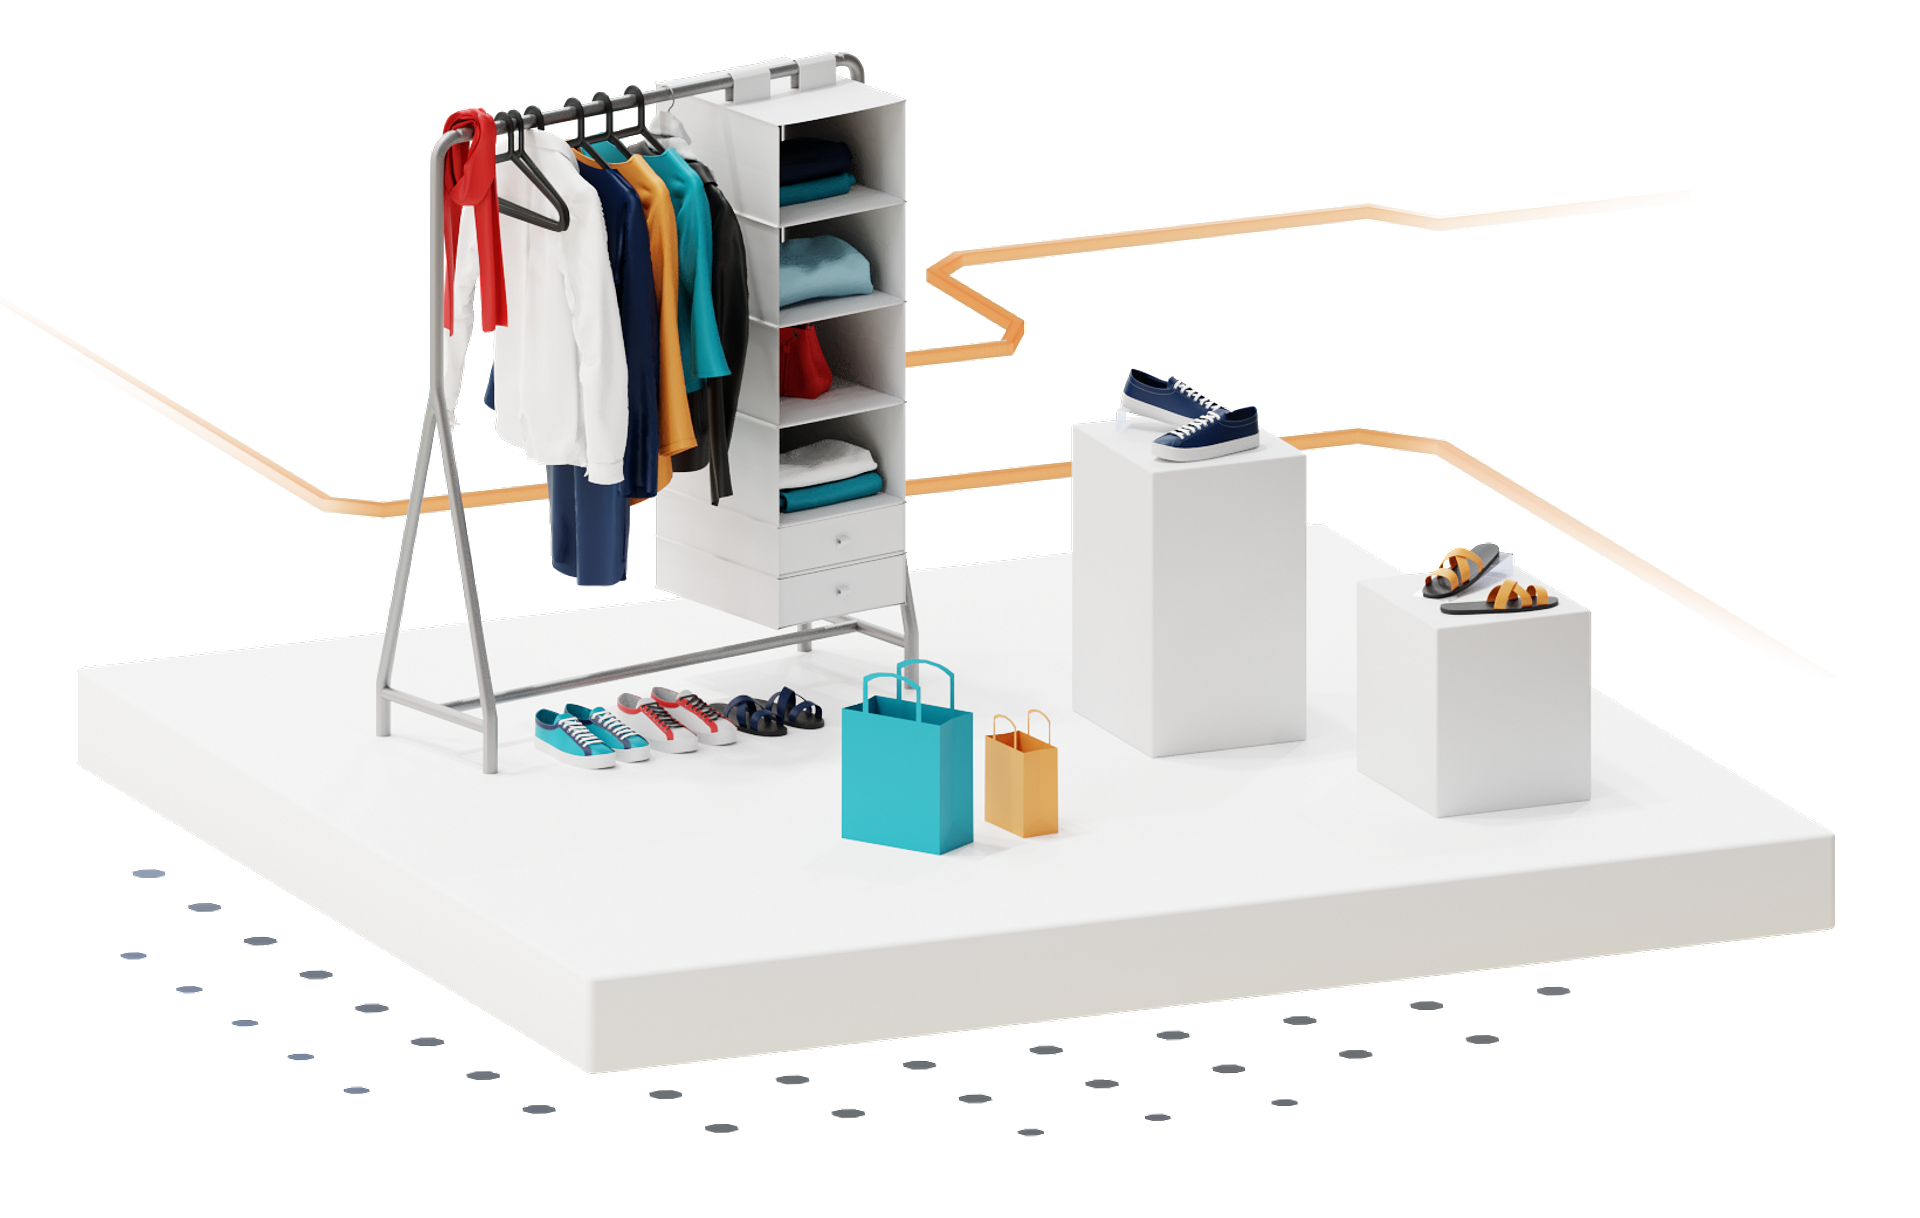 AI-Driven Apparel Supply Chain Planning from Vanguard Software